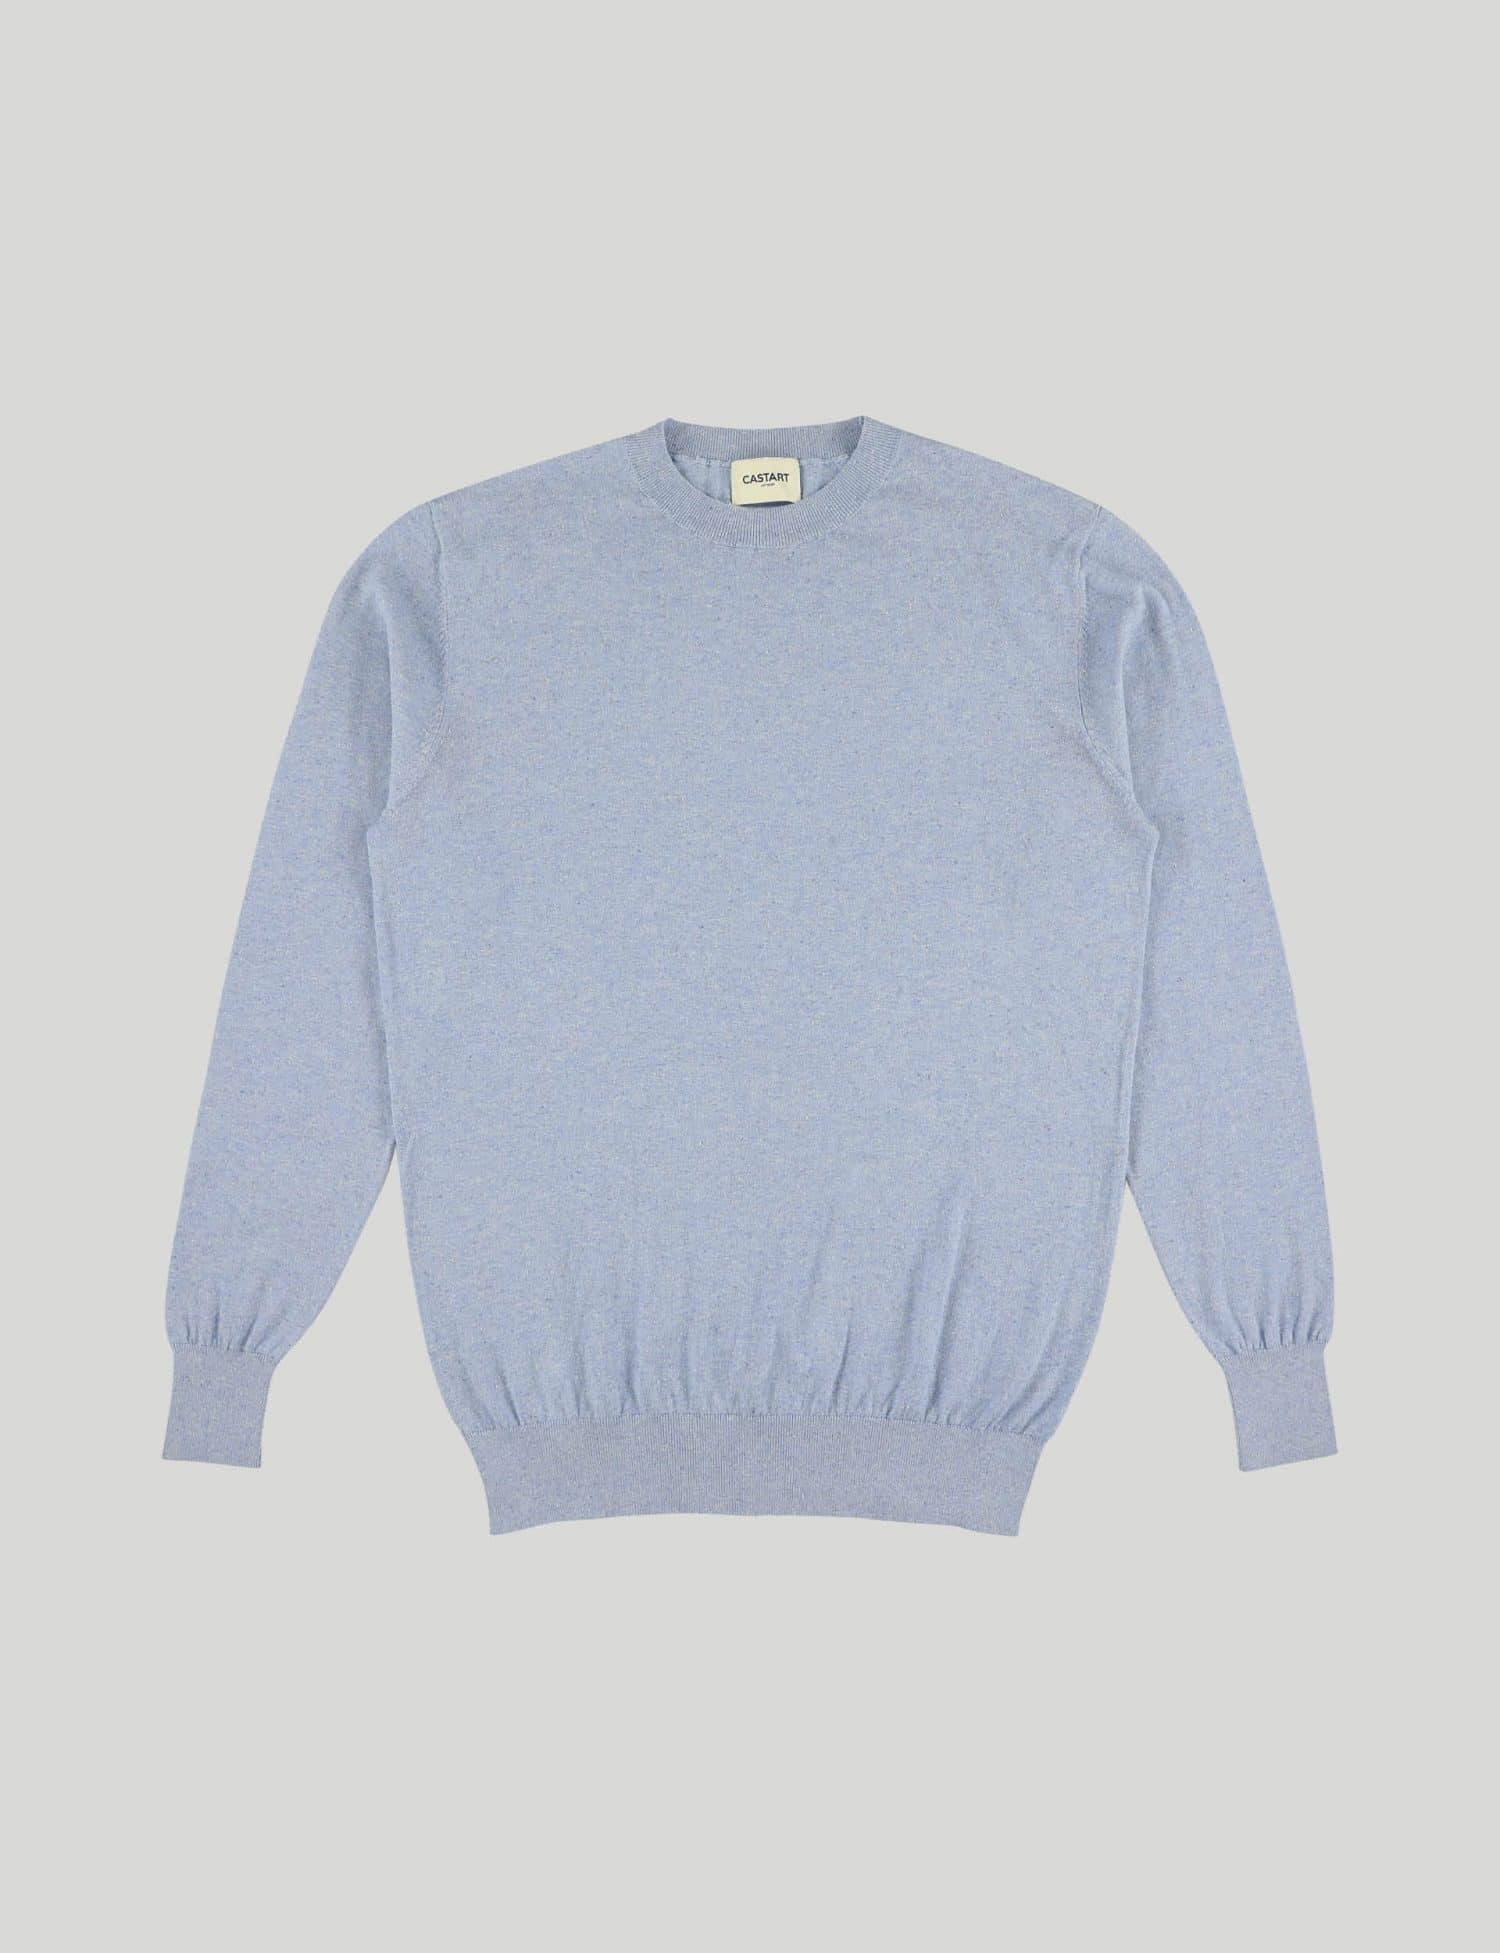 Castart - Talacre knitwear - Light Blue